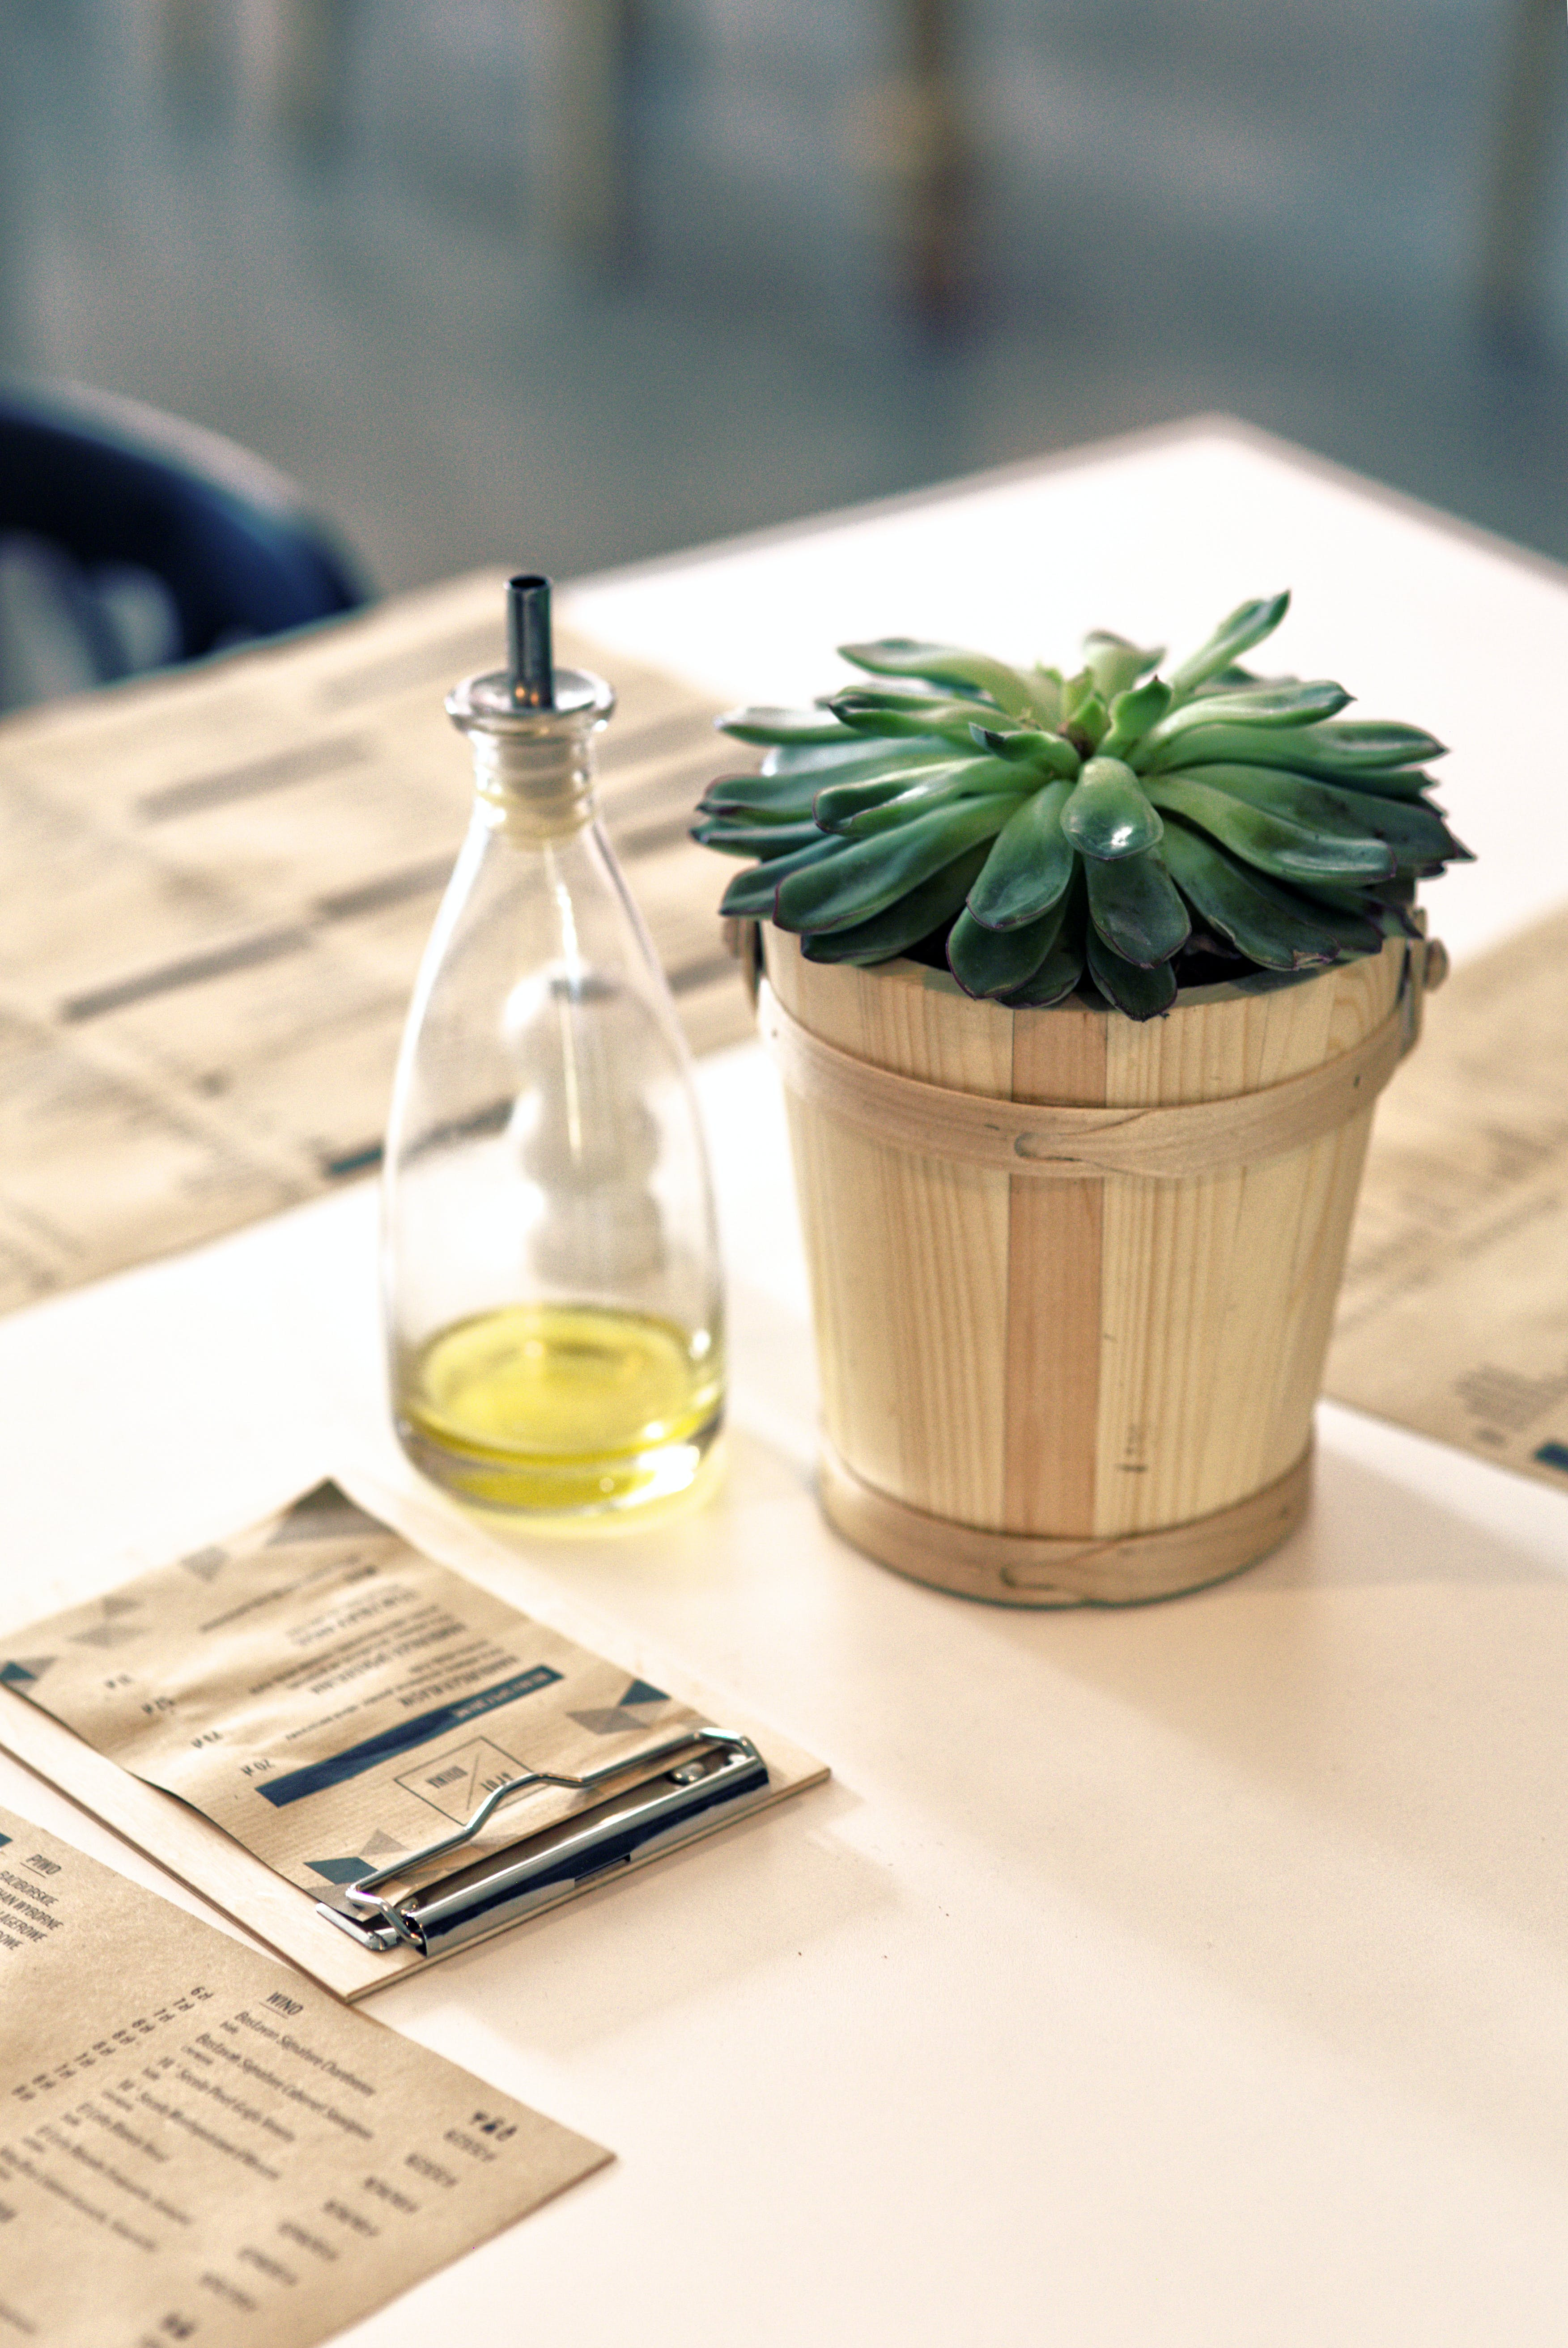 Plant & oil on the table